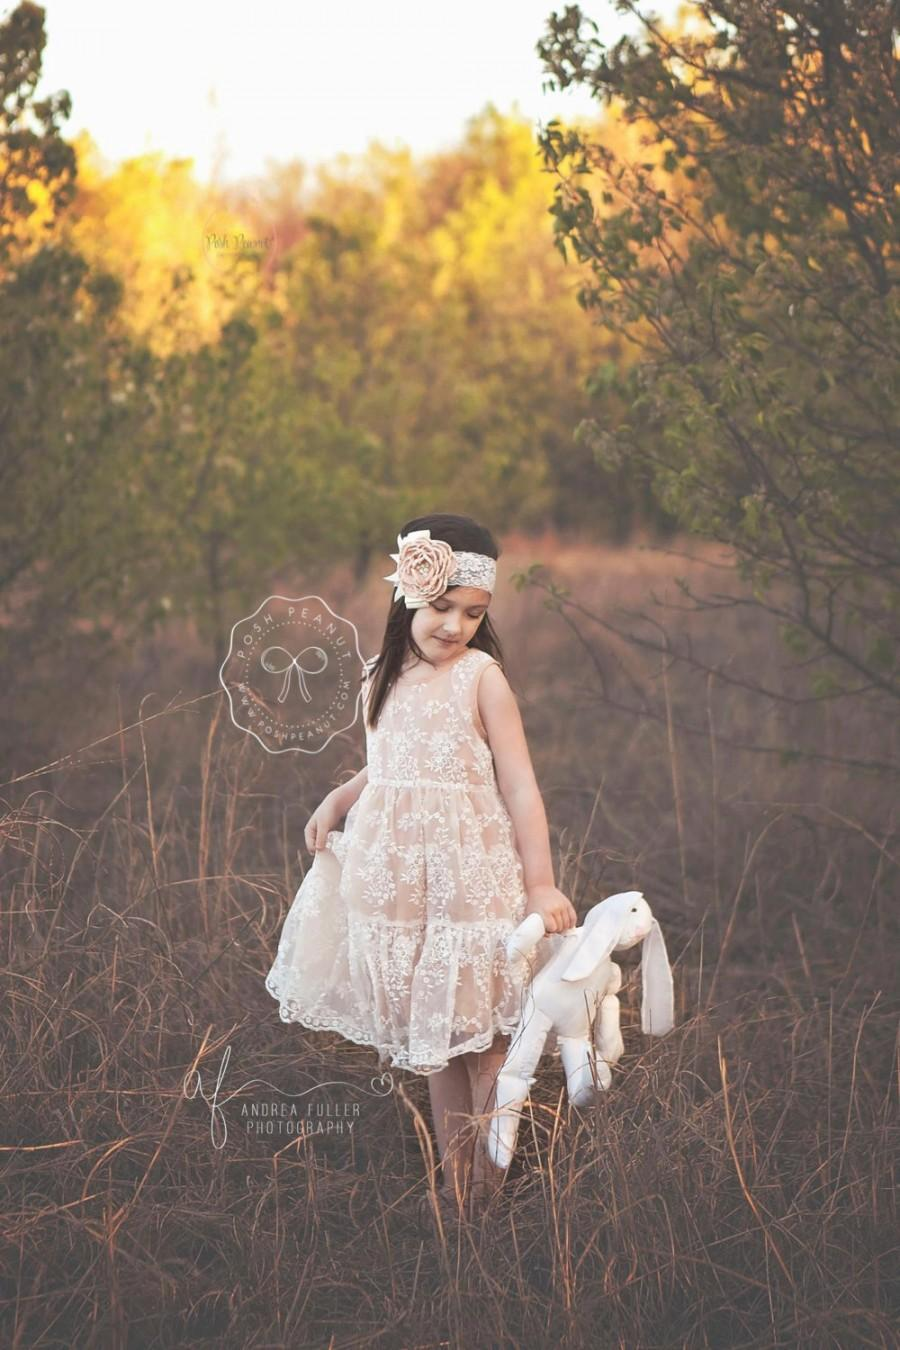 Mariage - Rustic flower girl dress, flower girl dresses, Flower girl dress, champagne lace dress, baby dress, girl dress, flower girl, girl dresses